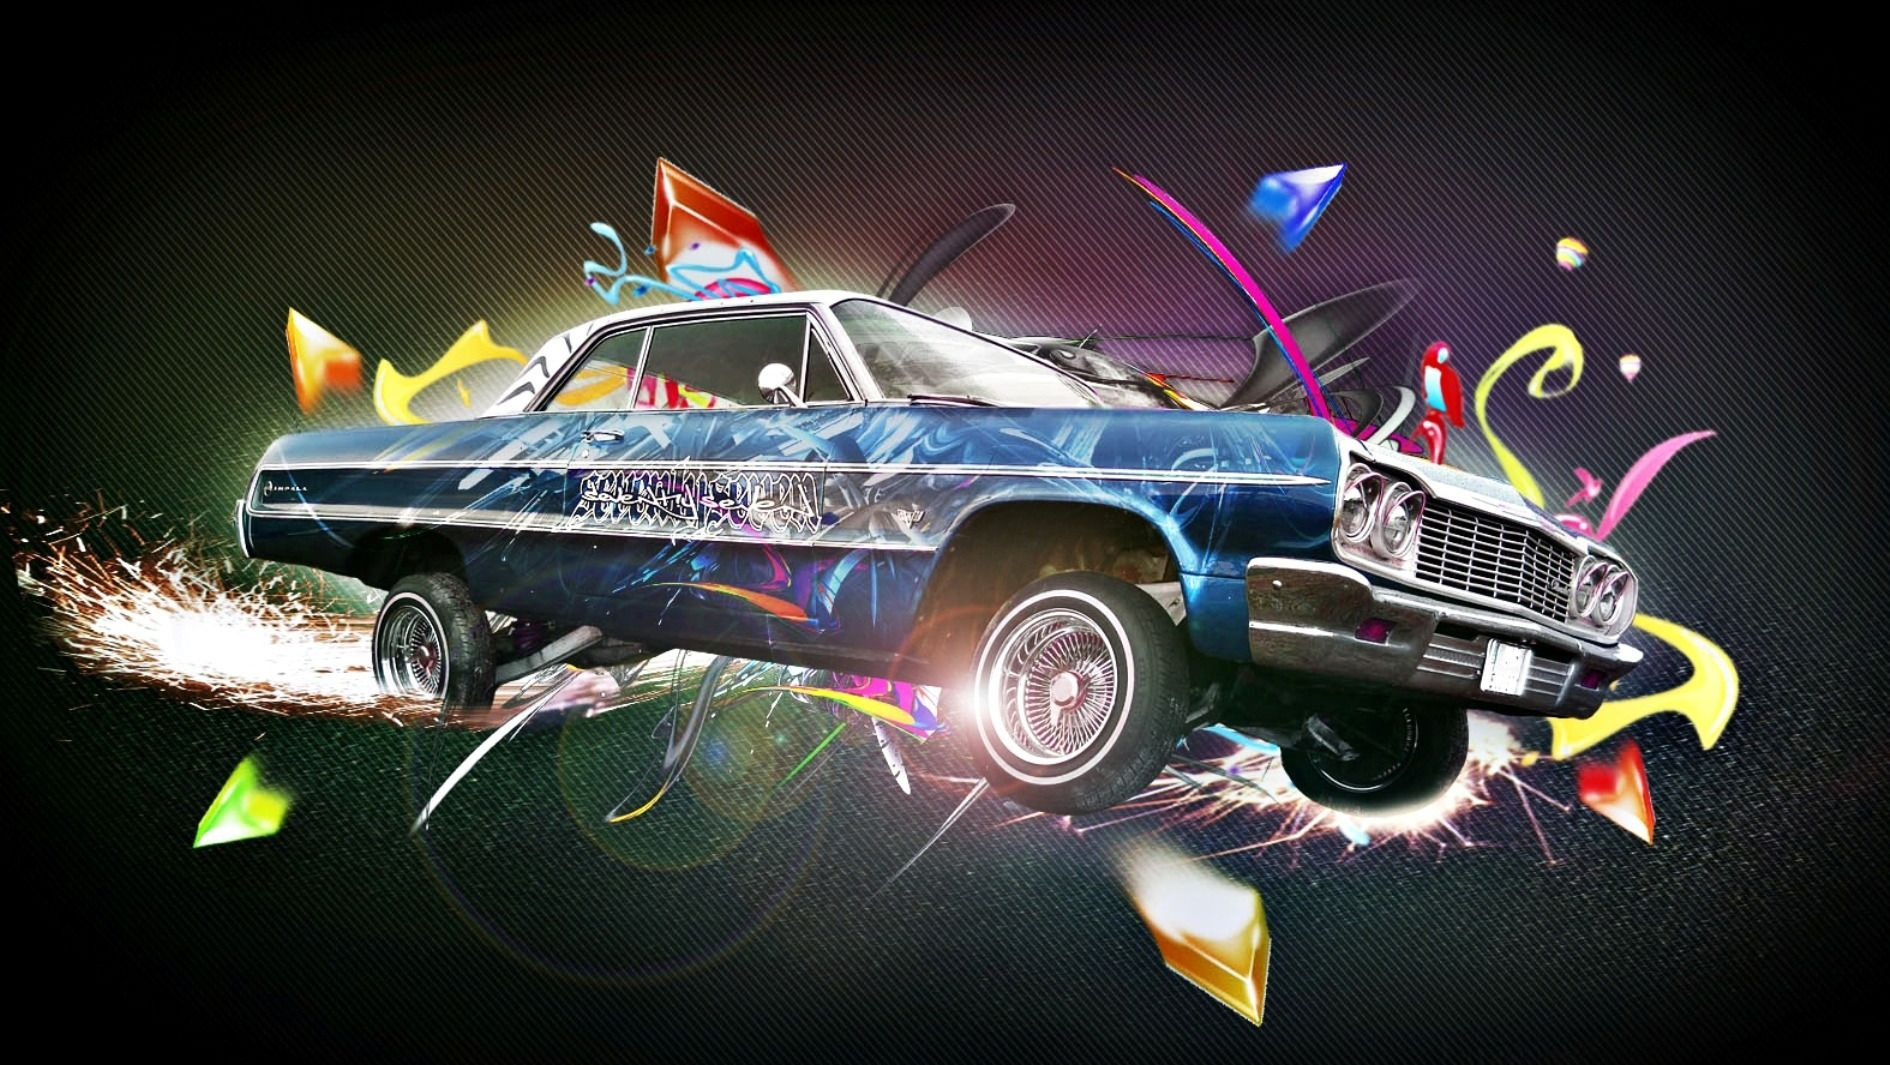 blue 1964 impala lowrider and graphics hd wallpaper